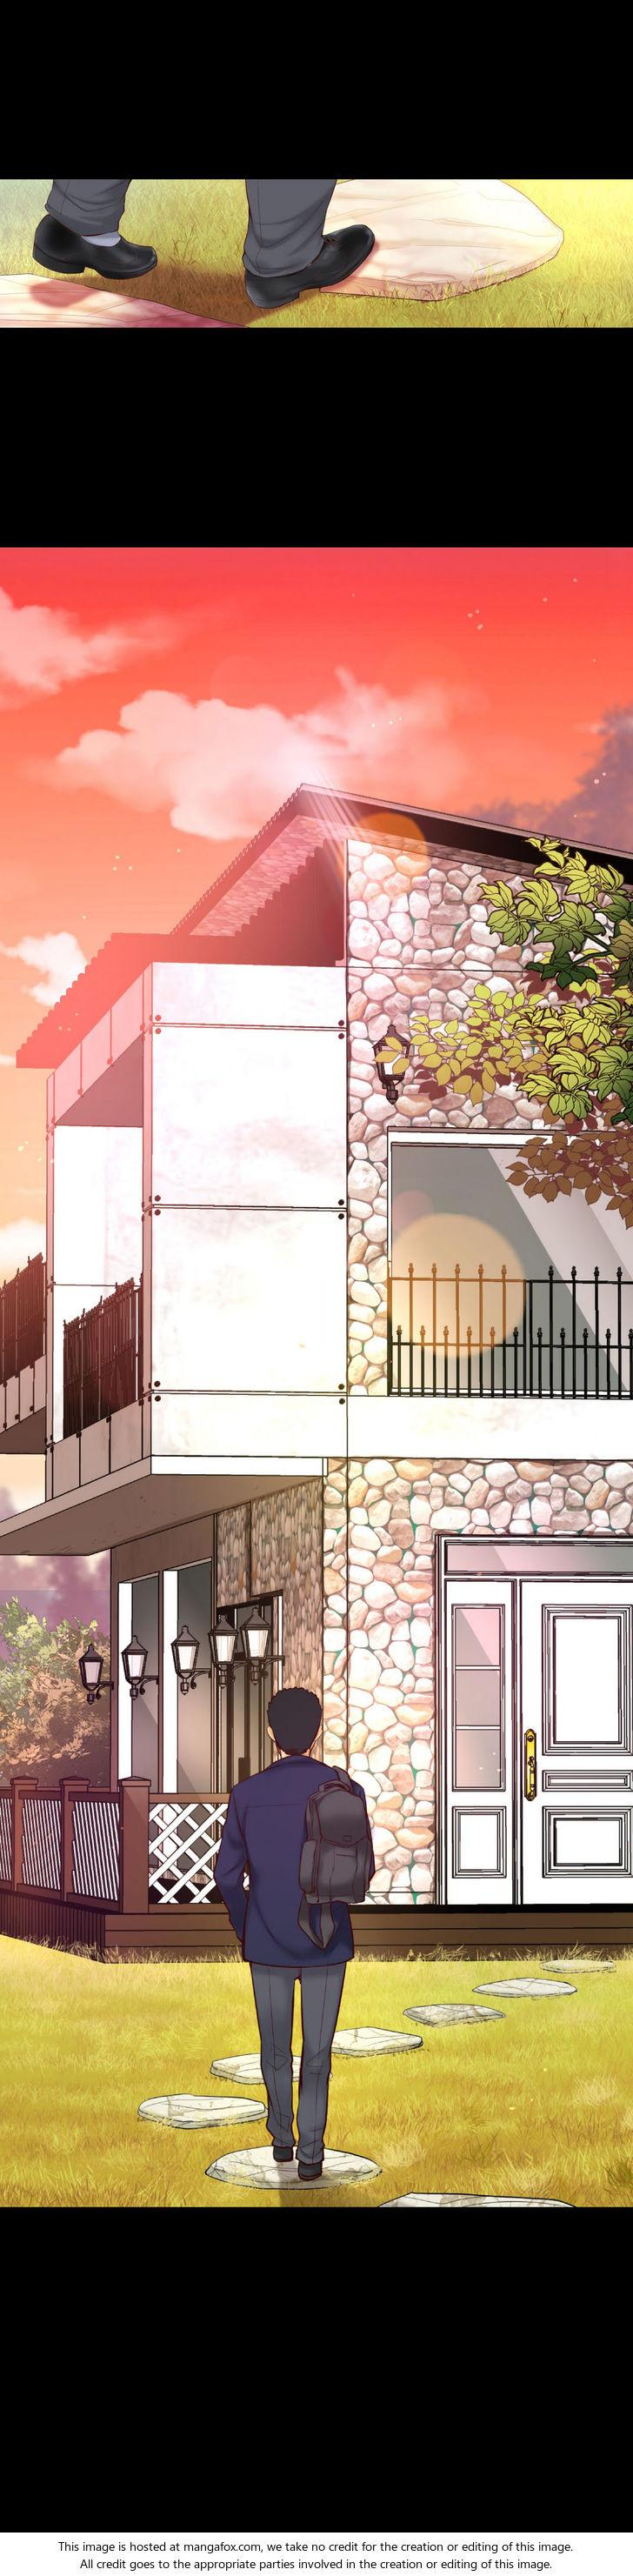 [Donggul Gom] She is Young (English) Part 1/2 1042